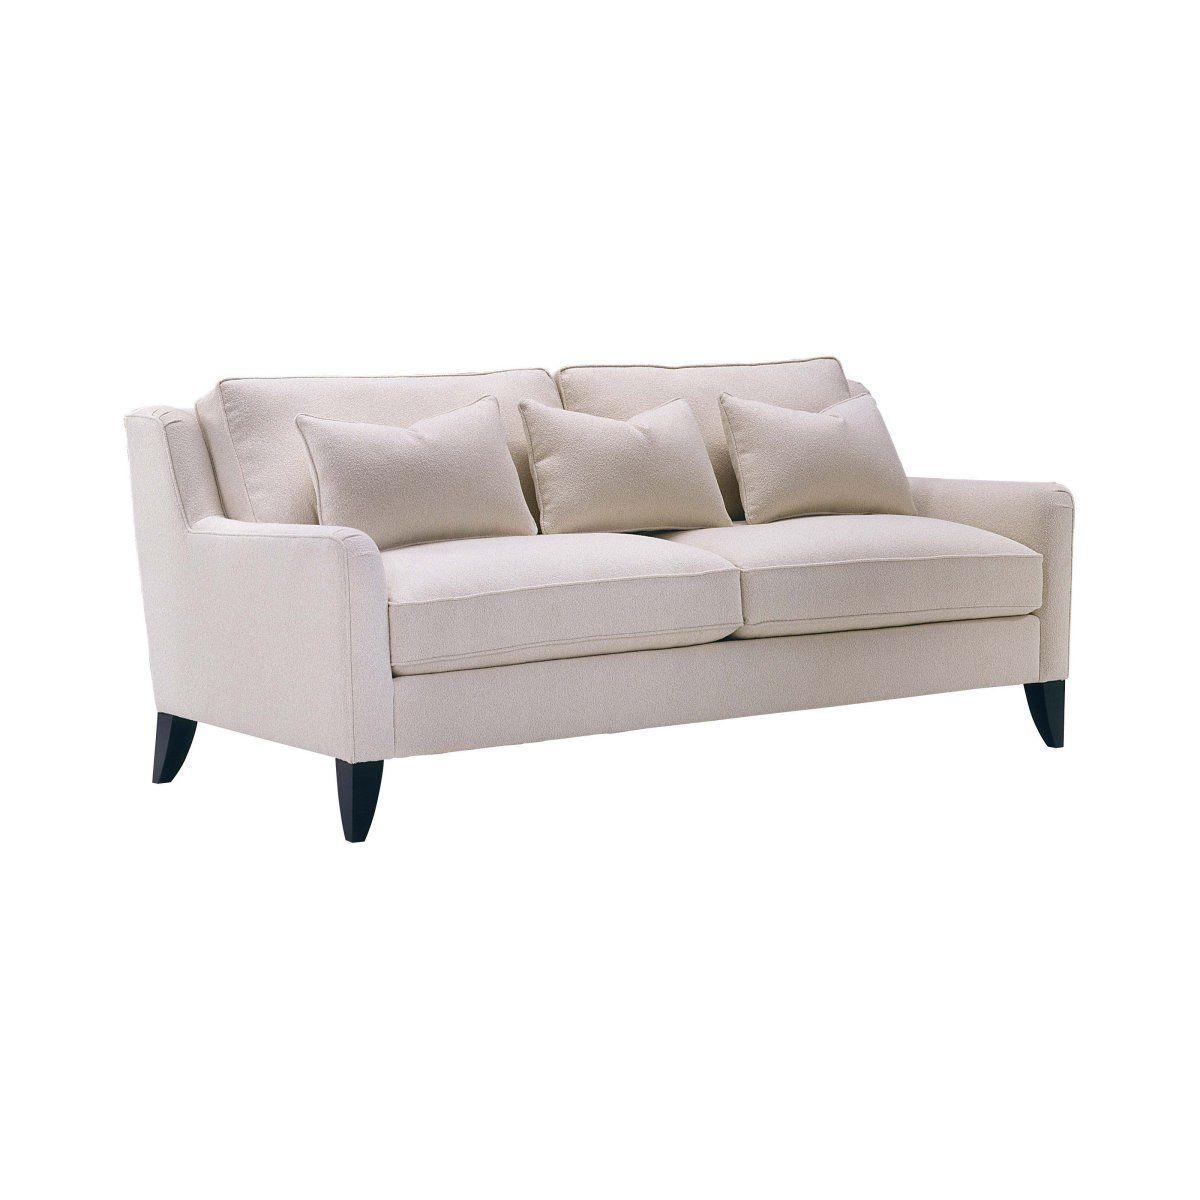 Lazar Retro Bellisimo White Fabric Sofa